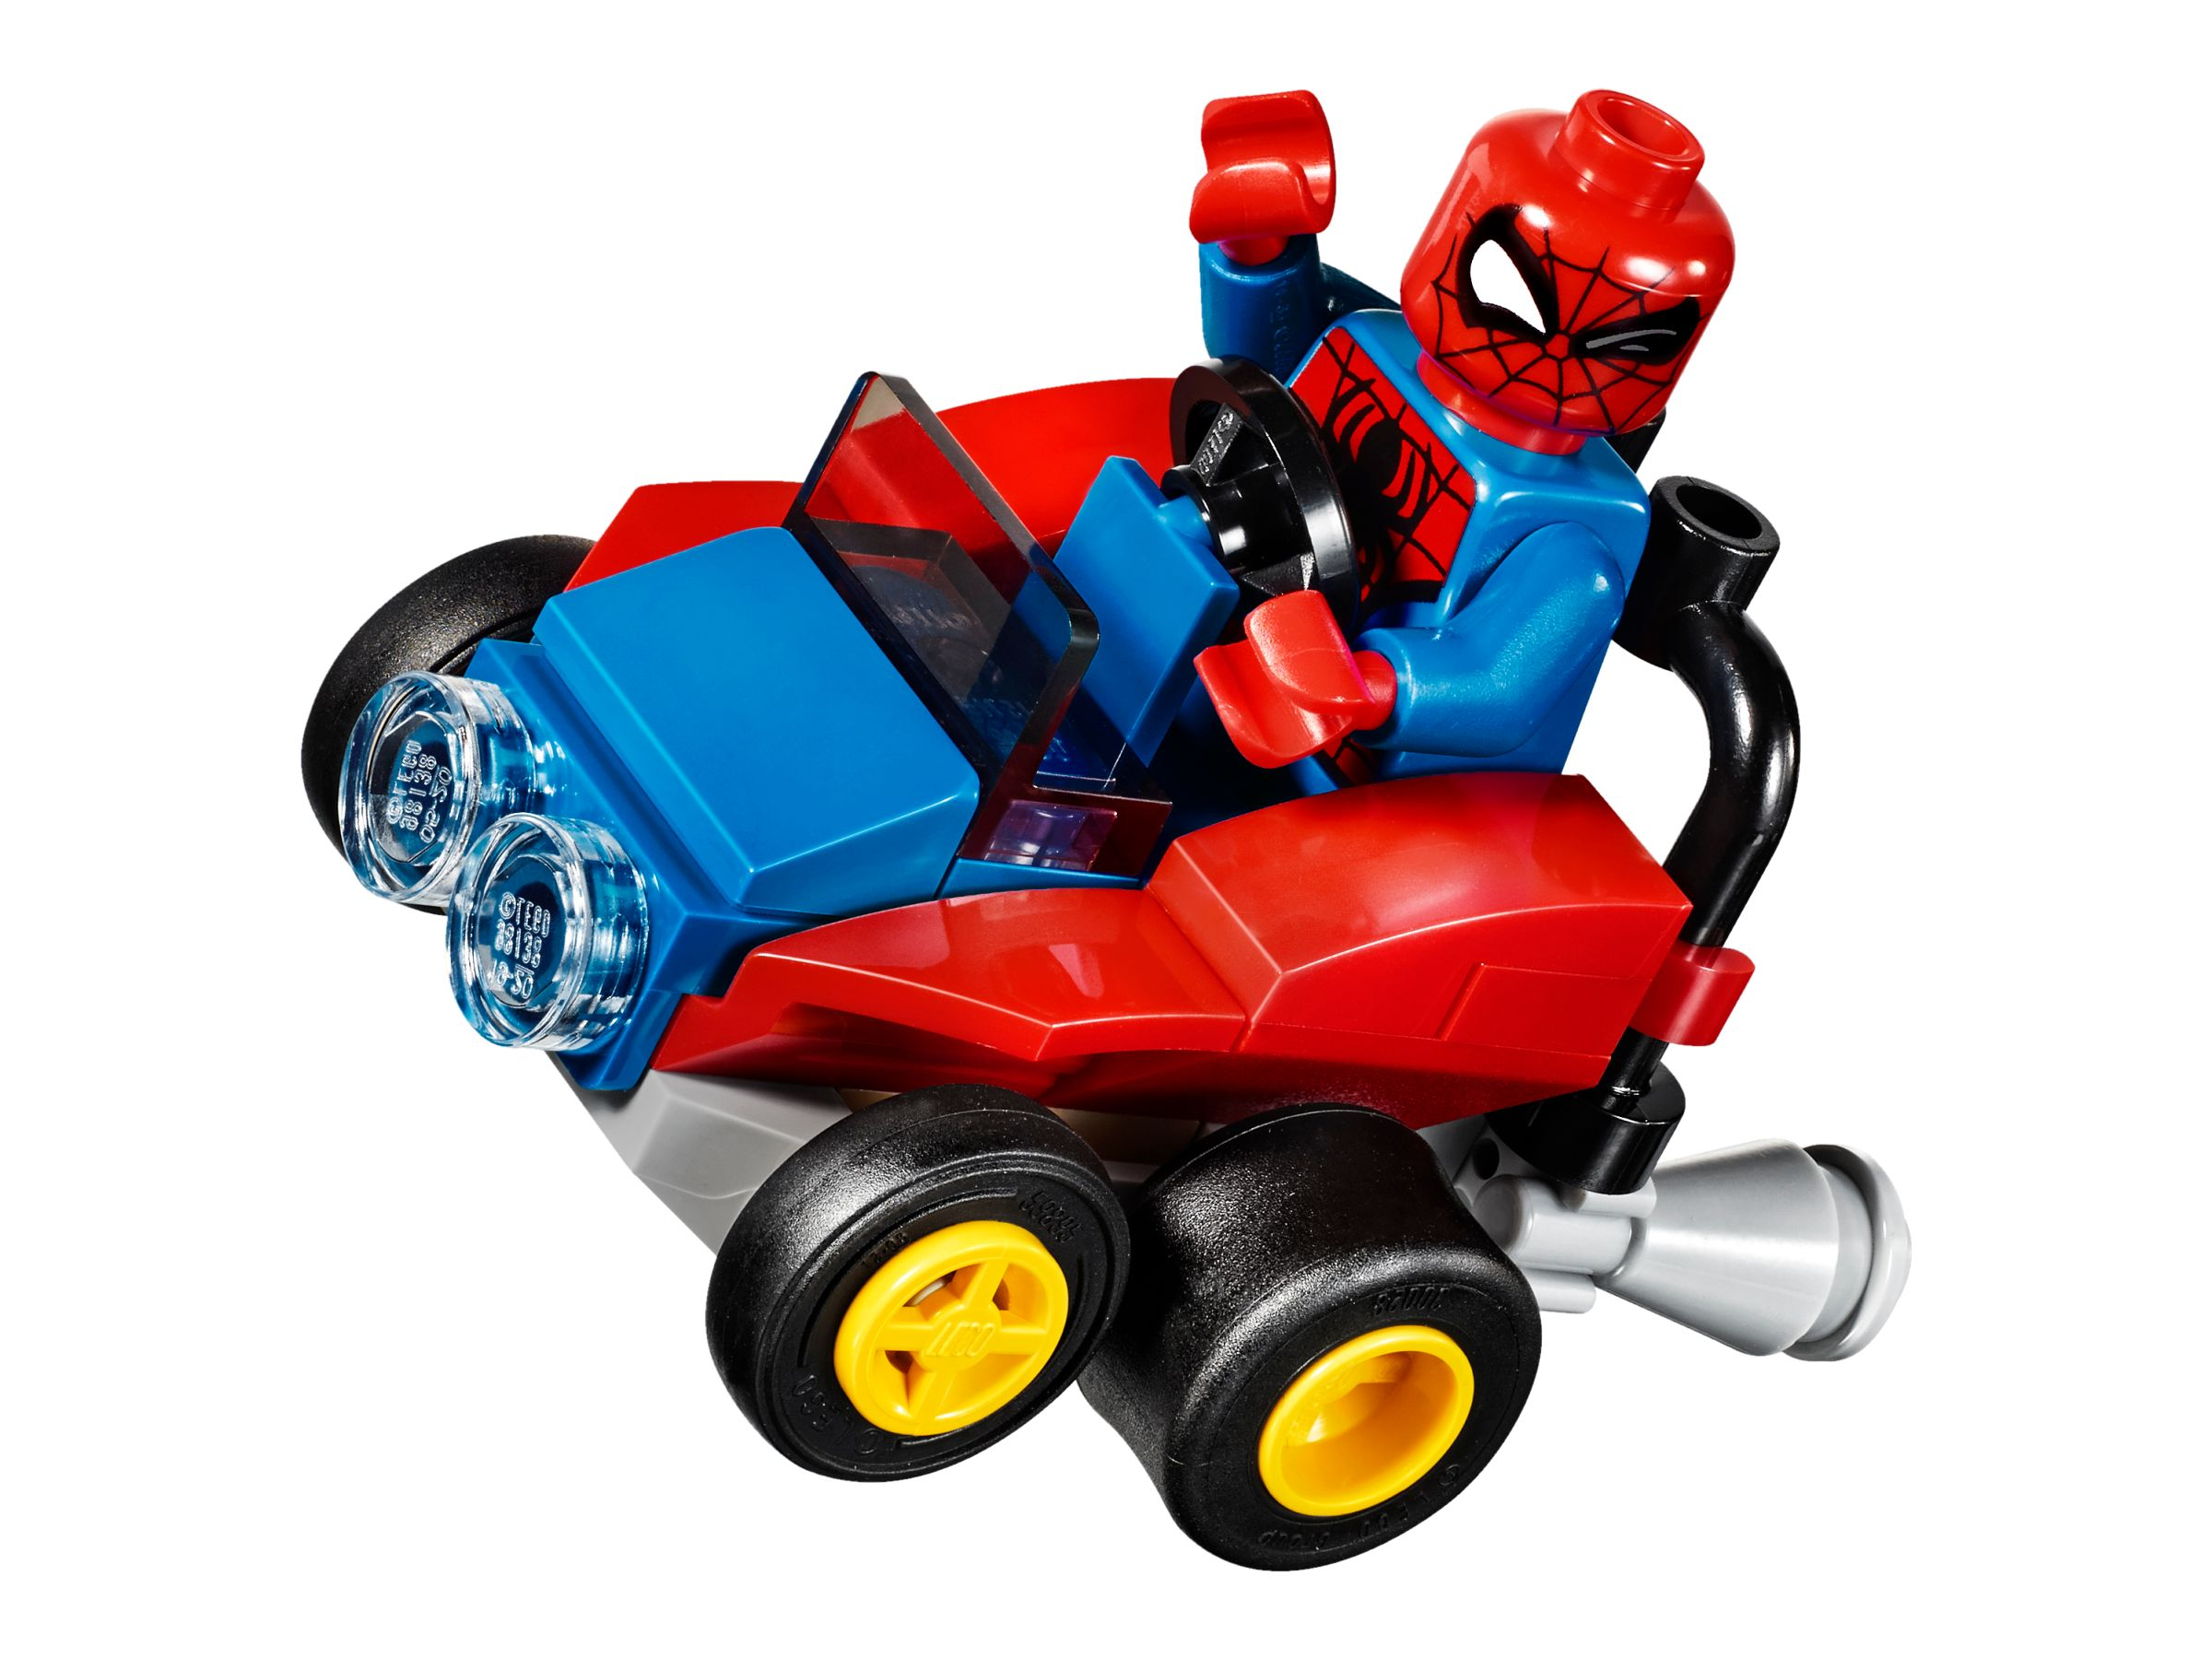 LEGO Super Heroes 76071 Mighty Micros: Spider-Man vs. Scorpion LEGO_76071_alt5.jpg